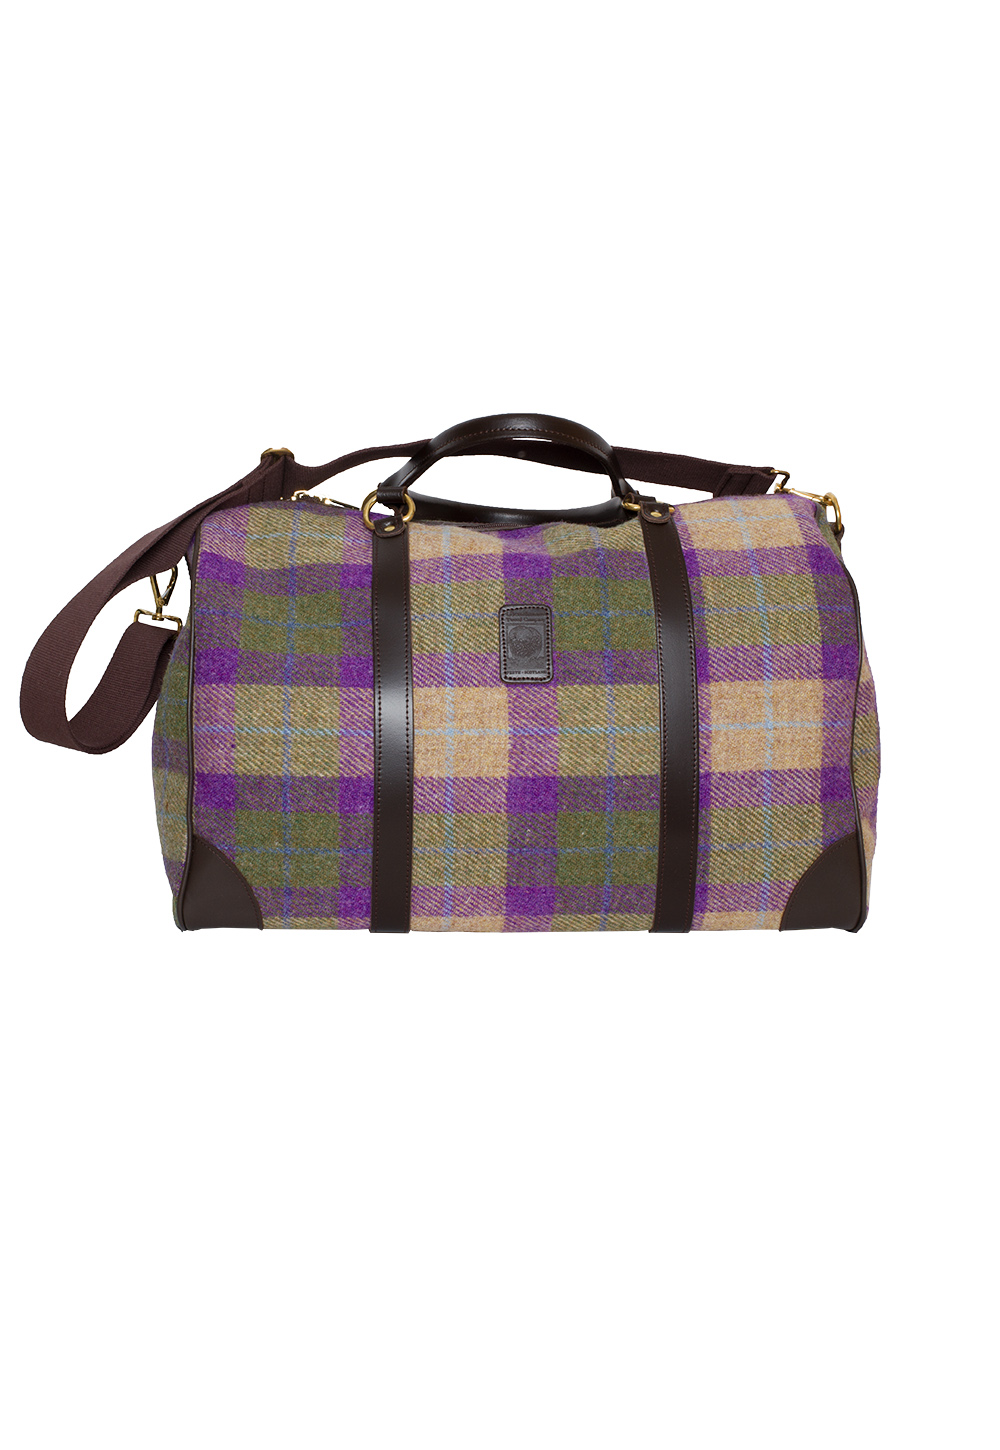 Luggage Harris Tweed 1501